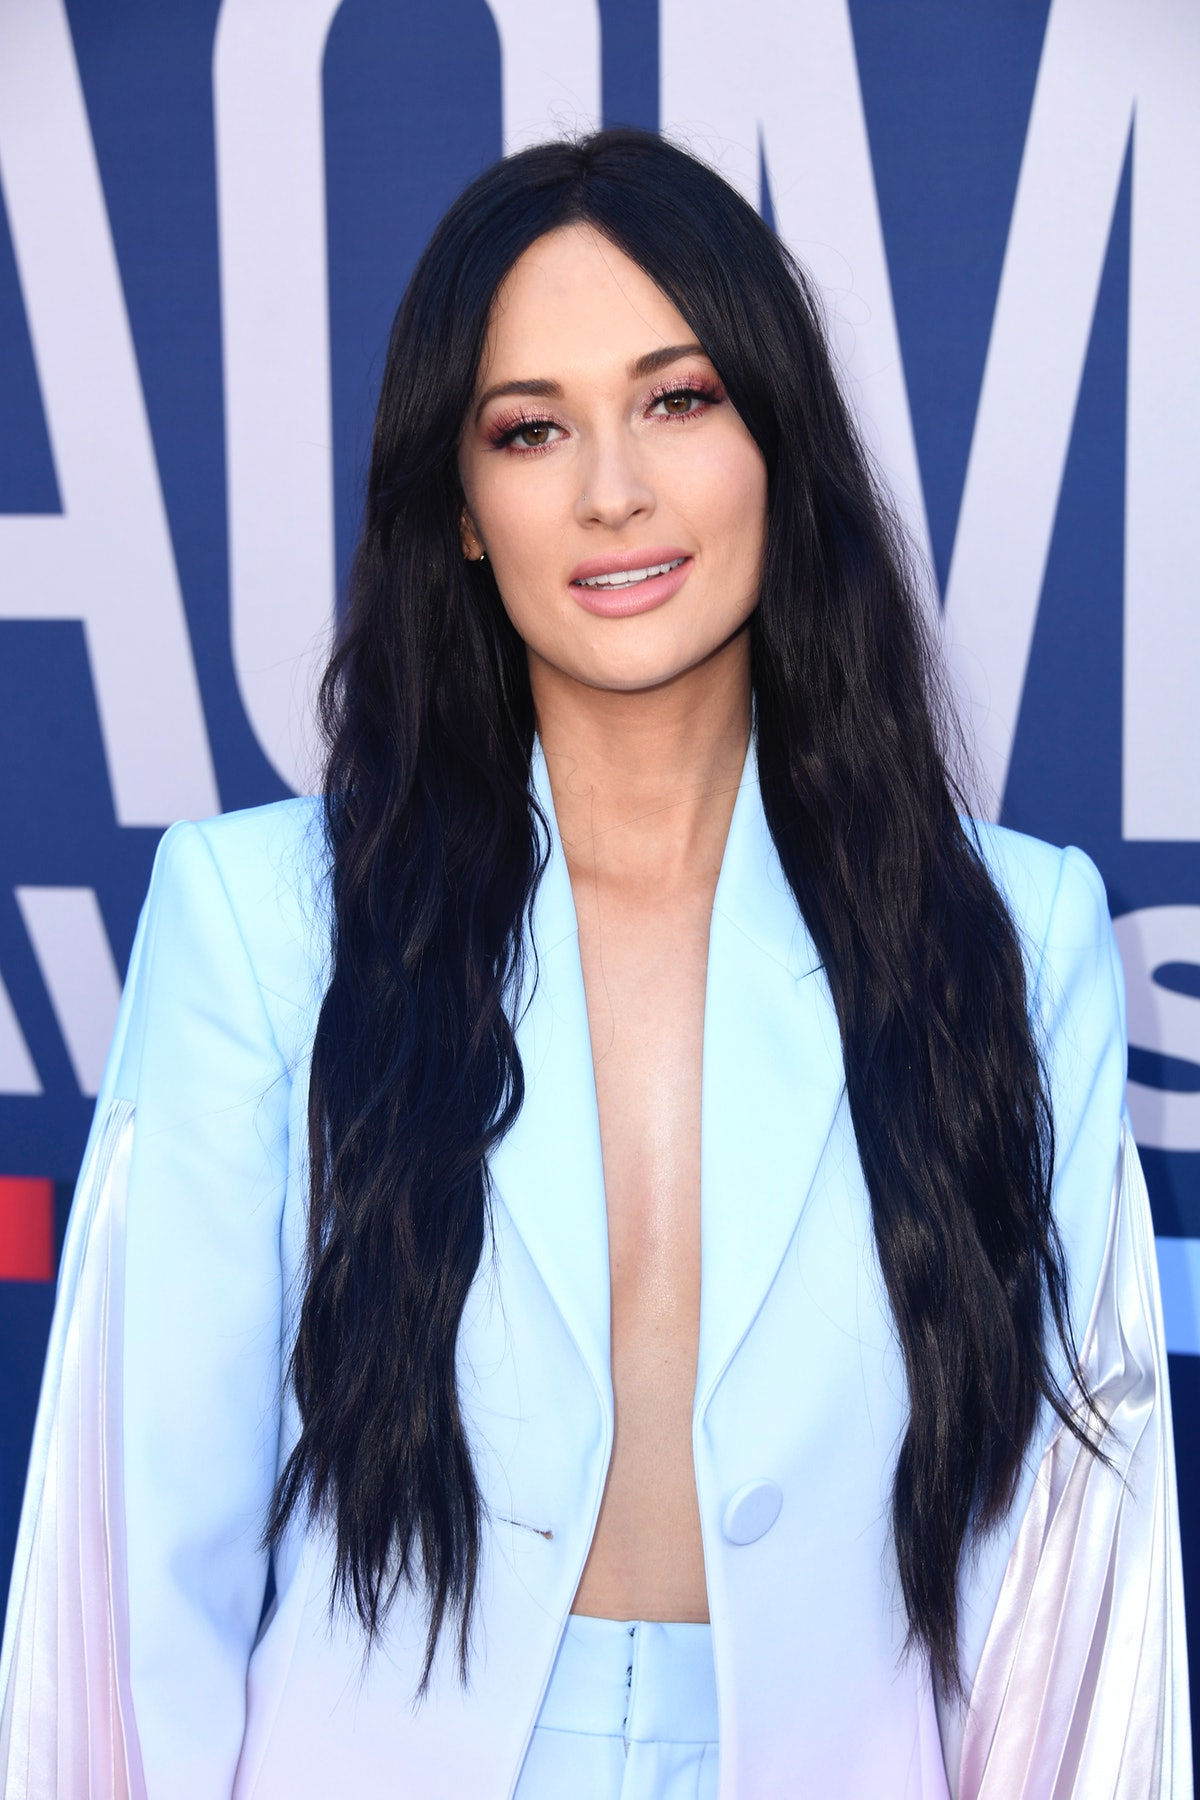 LAS VEGAS, NEVADA - APRIL 07: Kacey Musgraves attends the 54th Academy Of Country Music Awards at MG...